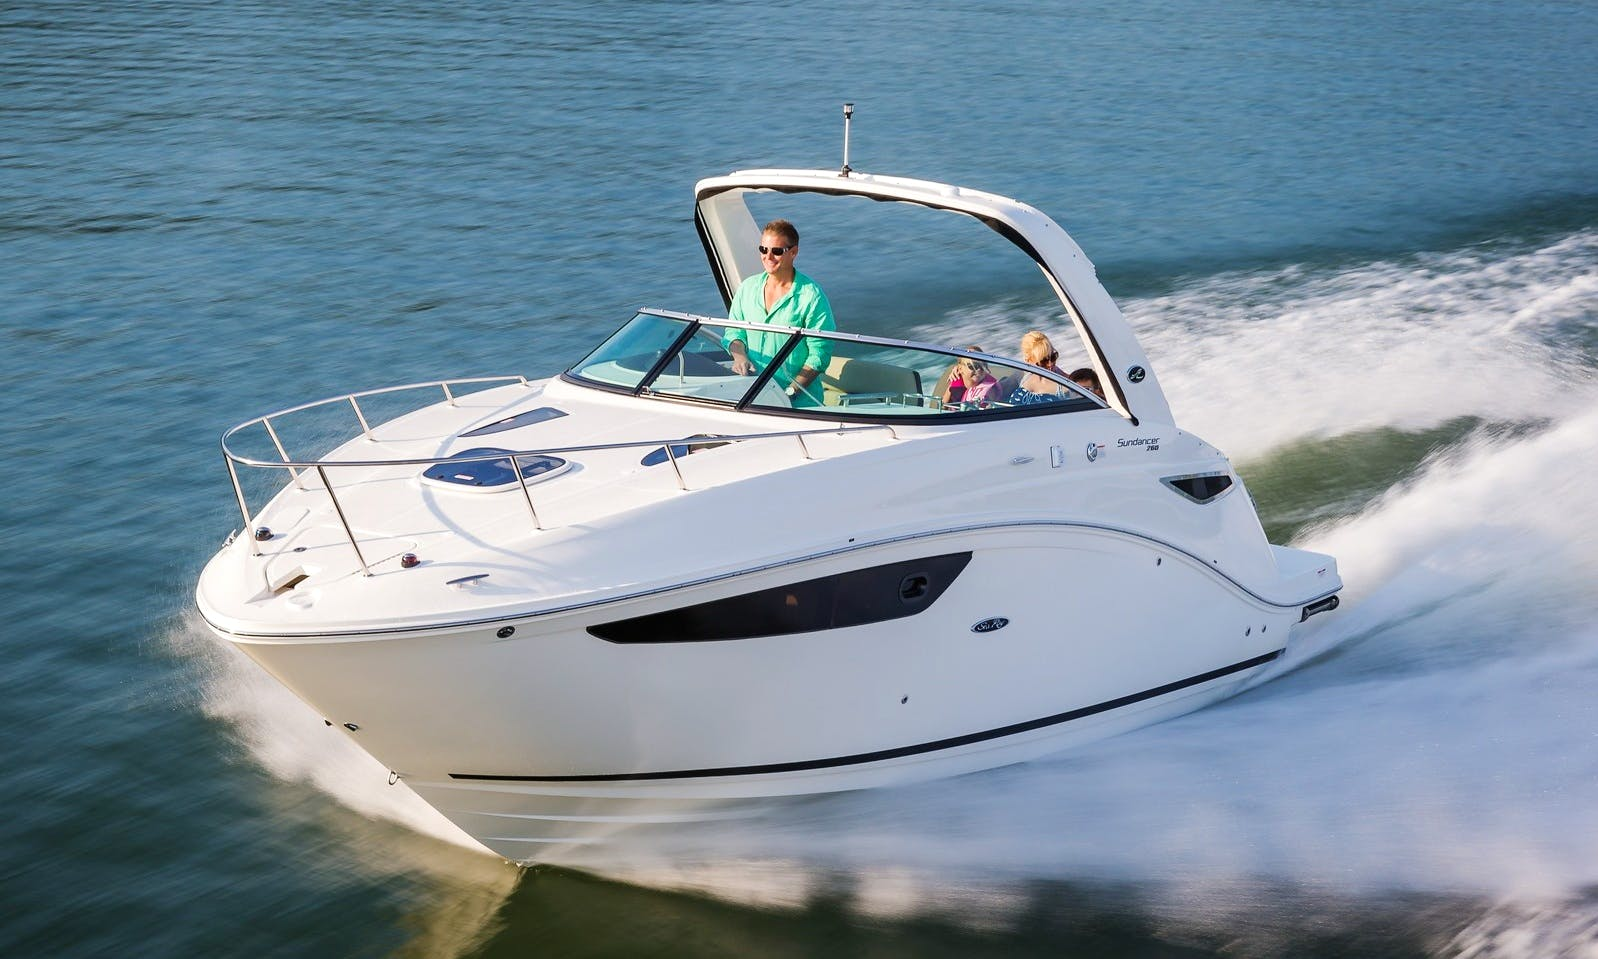 2015 27' Sea Ray Sundancer Motor Yacht Rental In Newport Beach, California